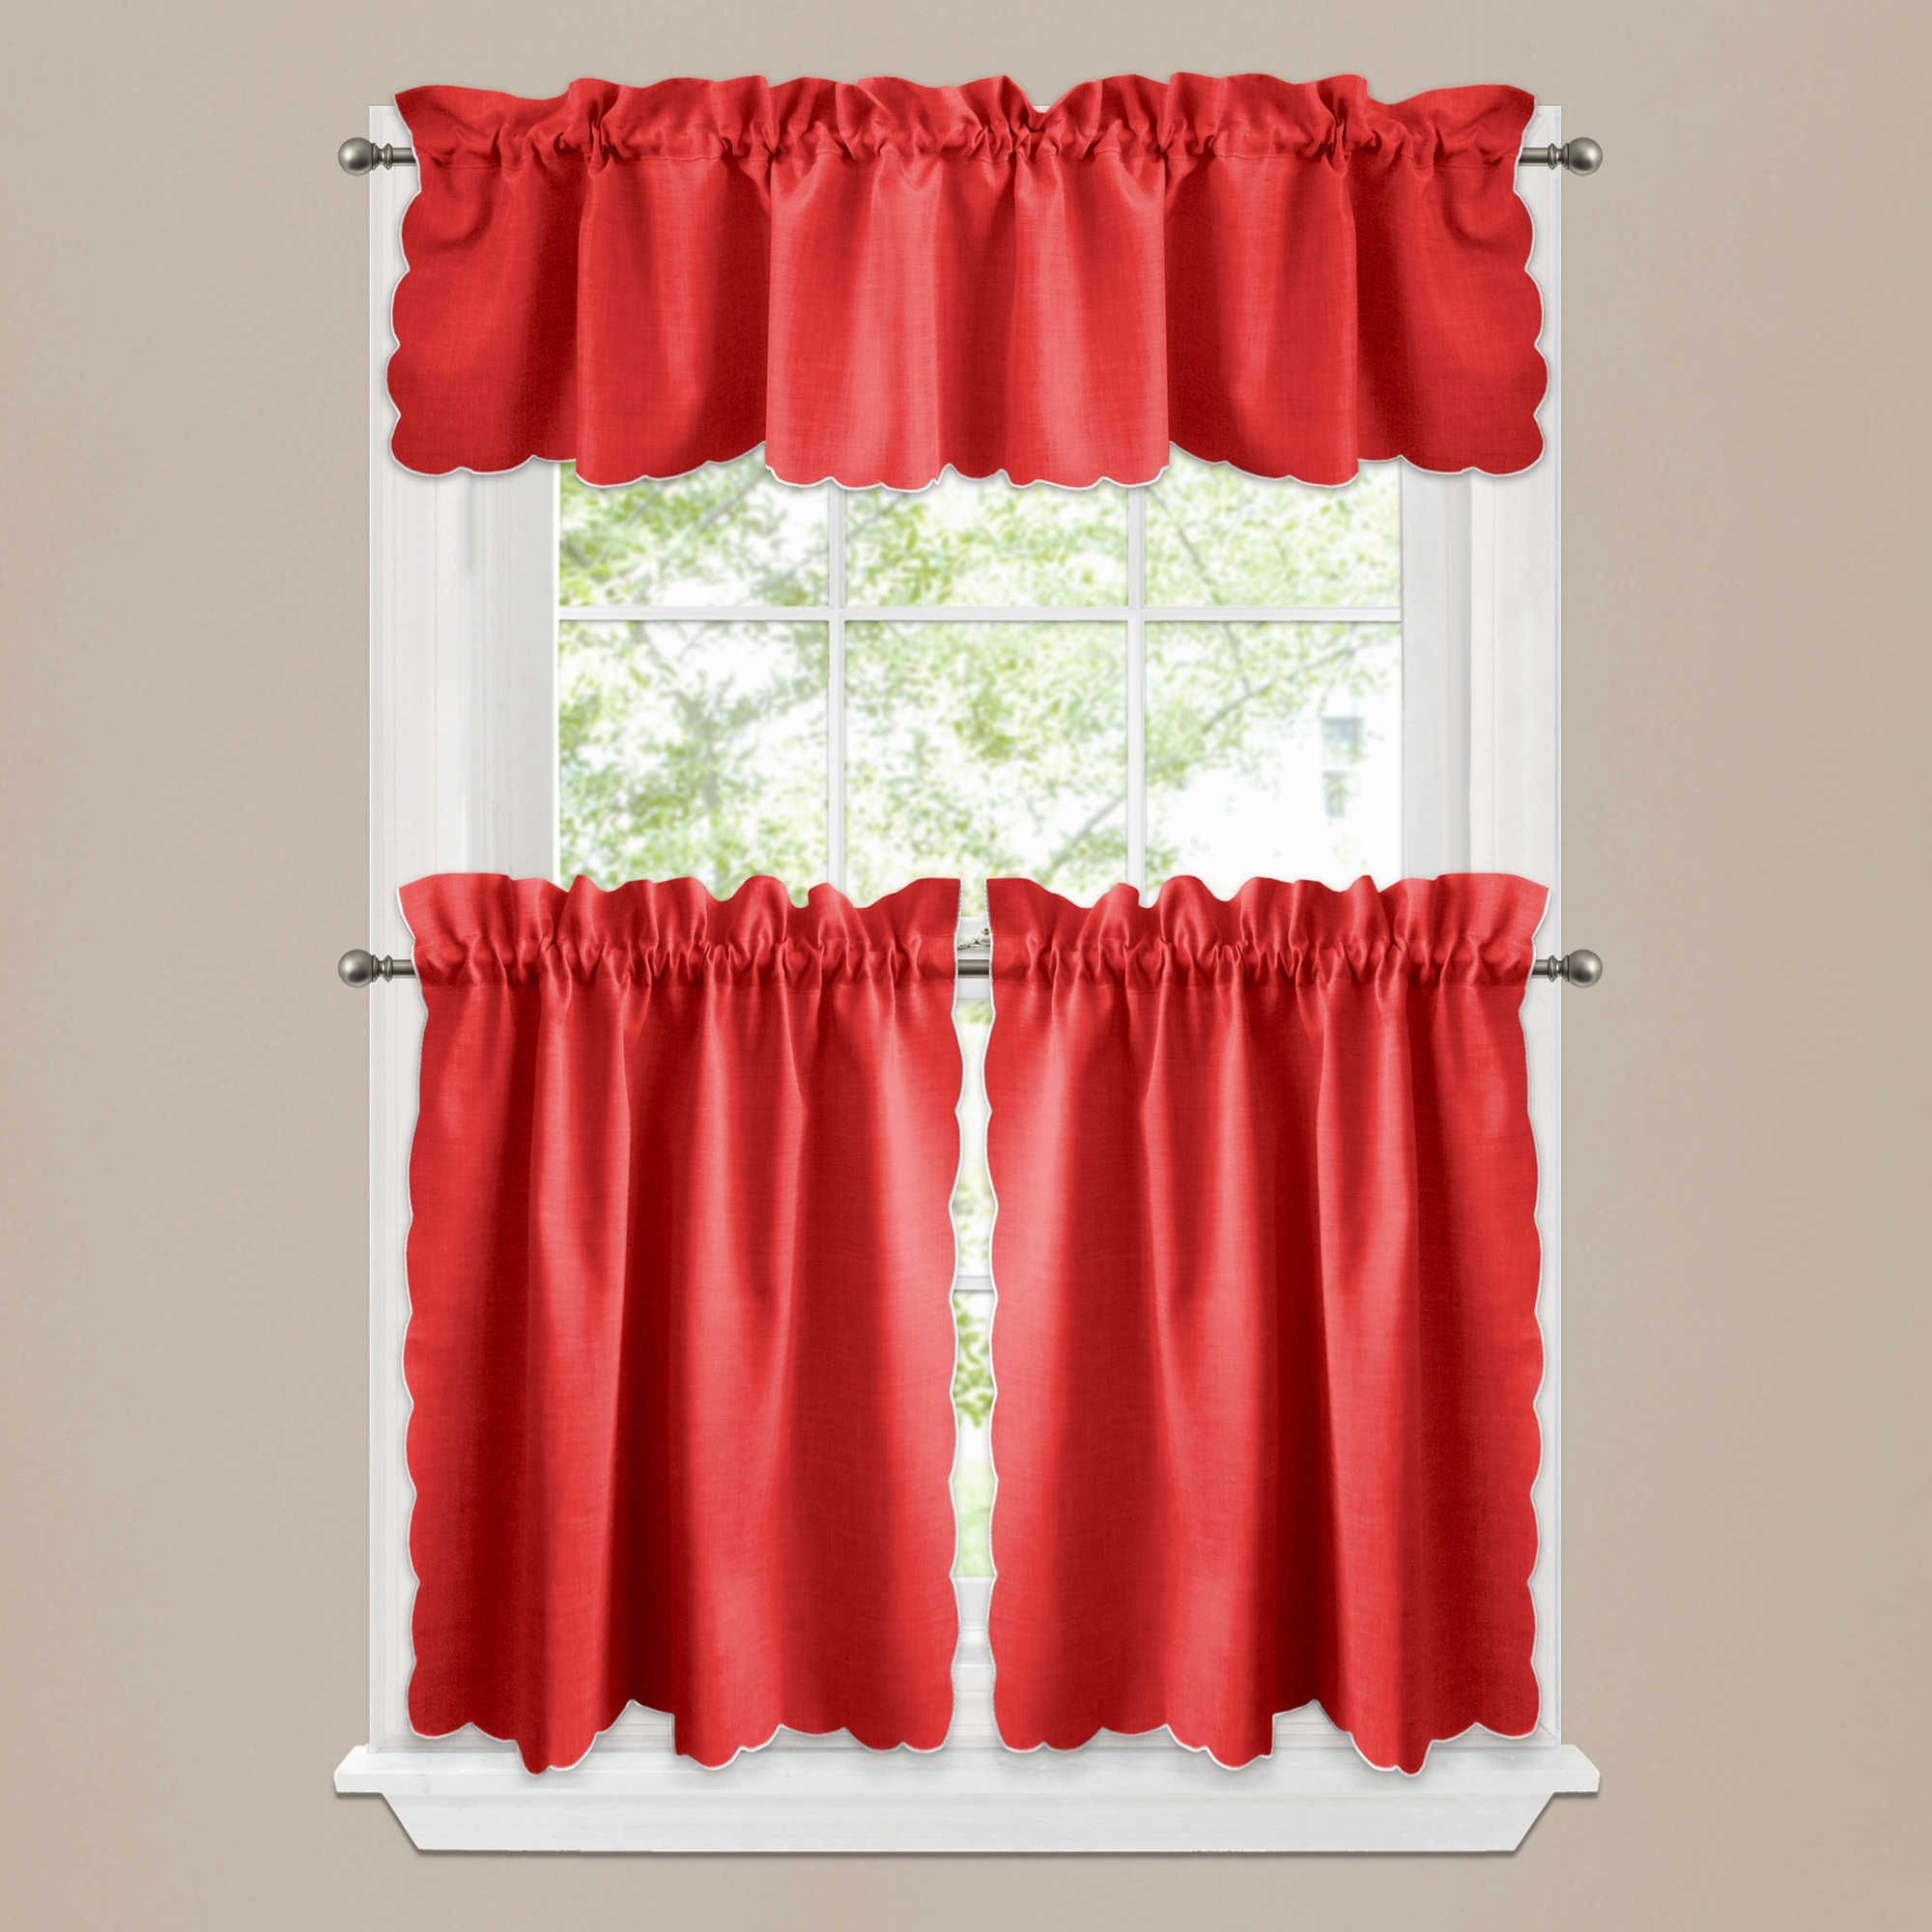 Curtains for a red kitchen